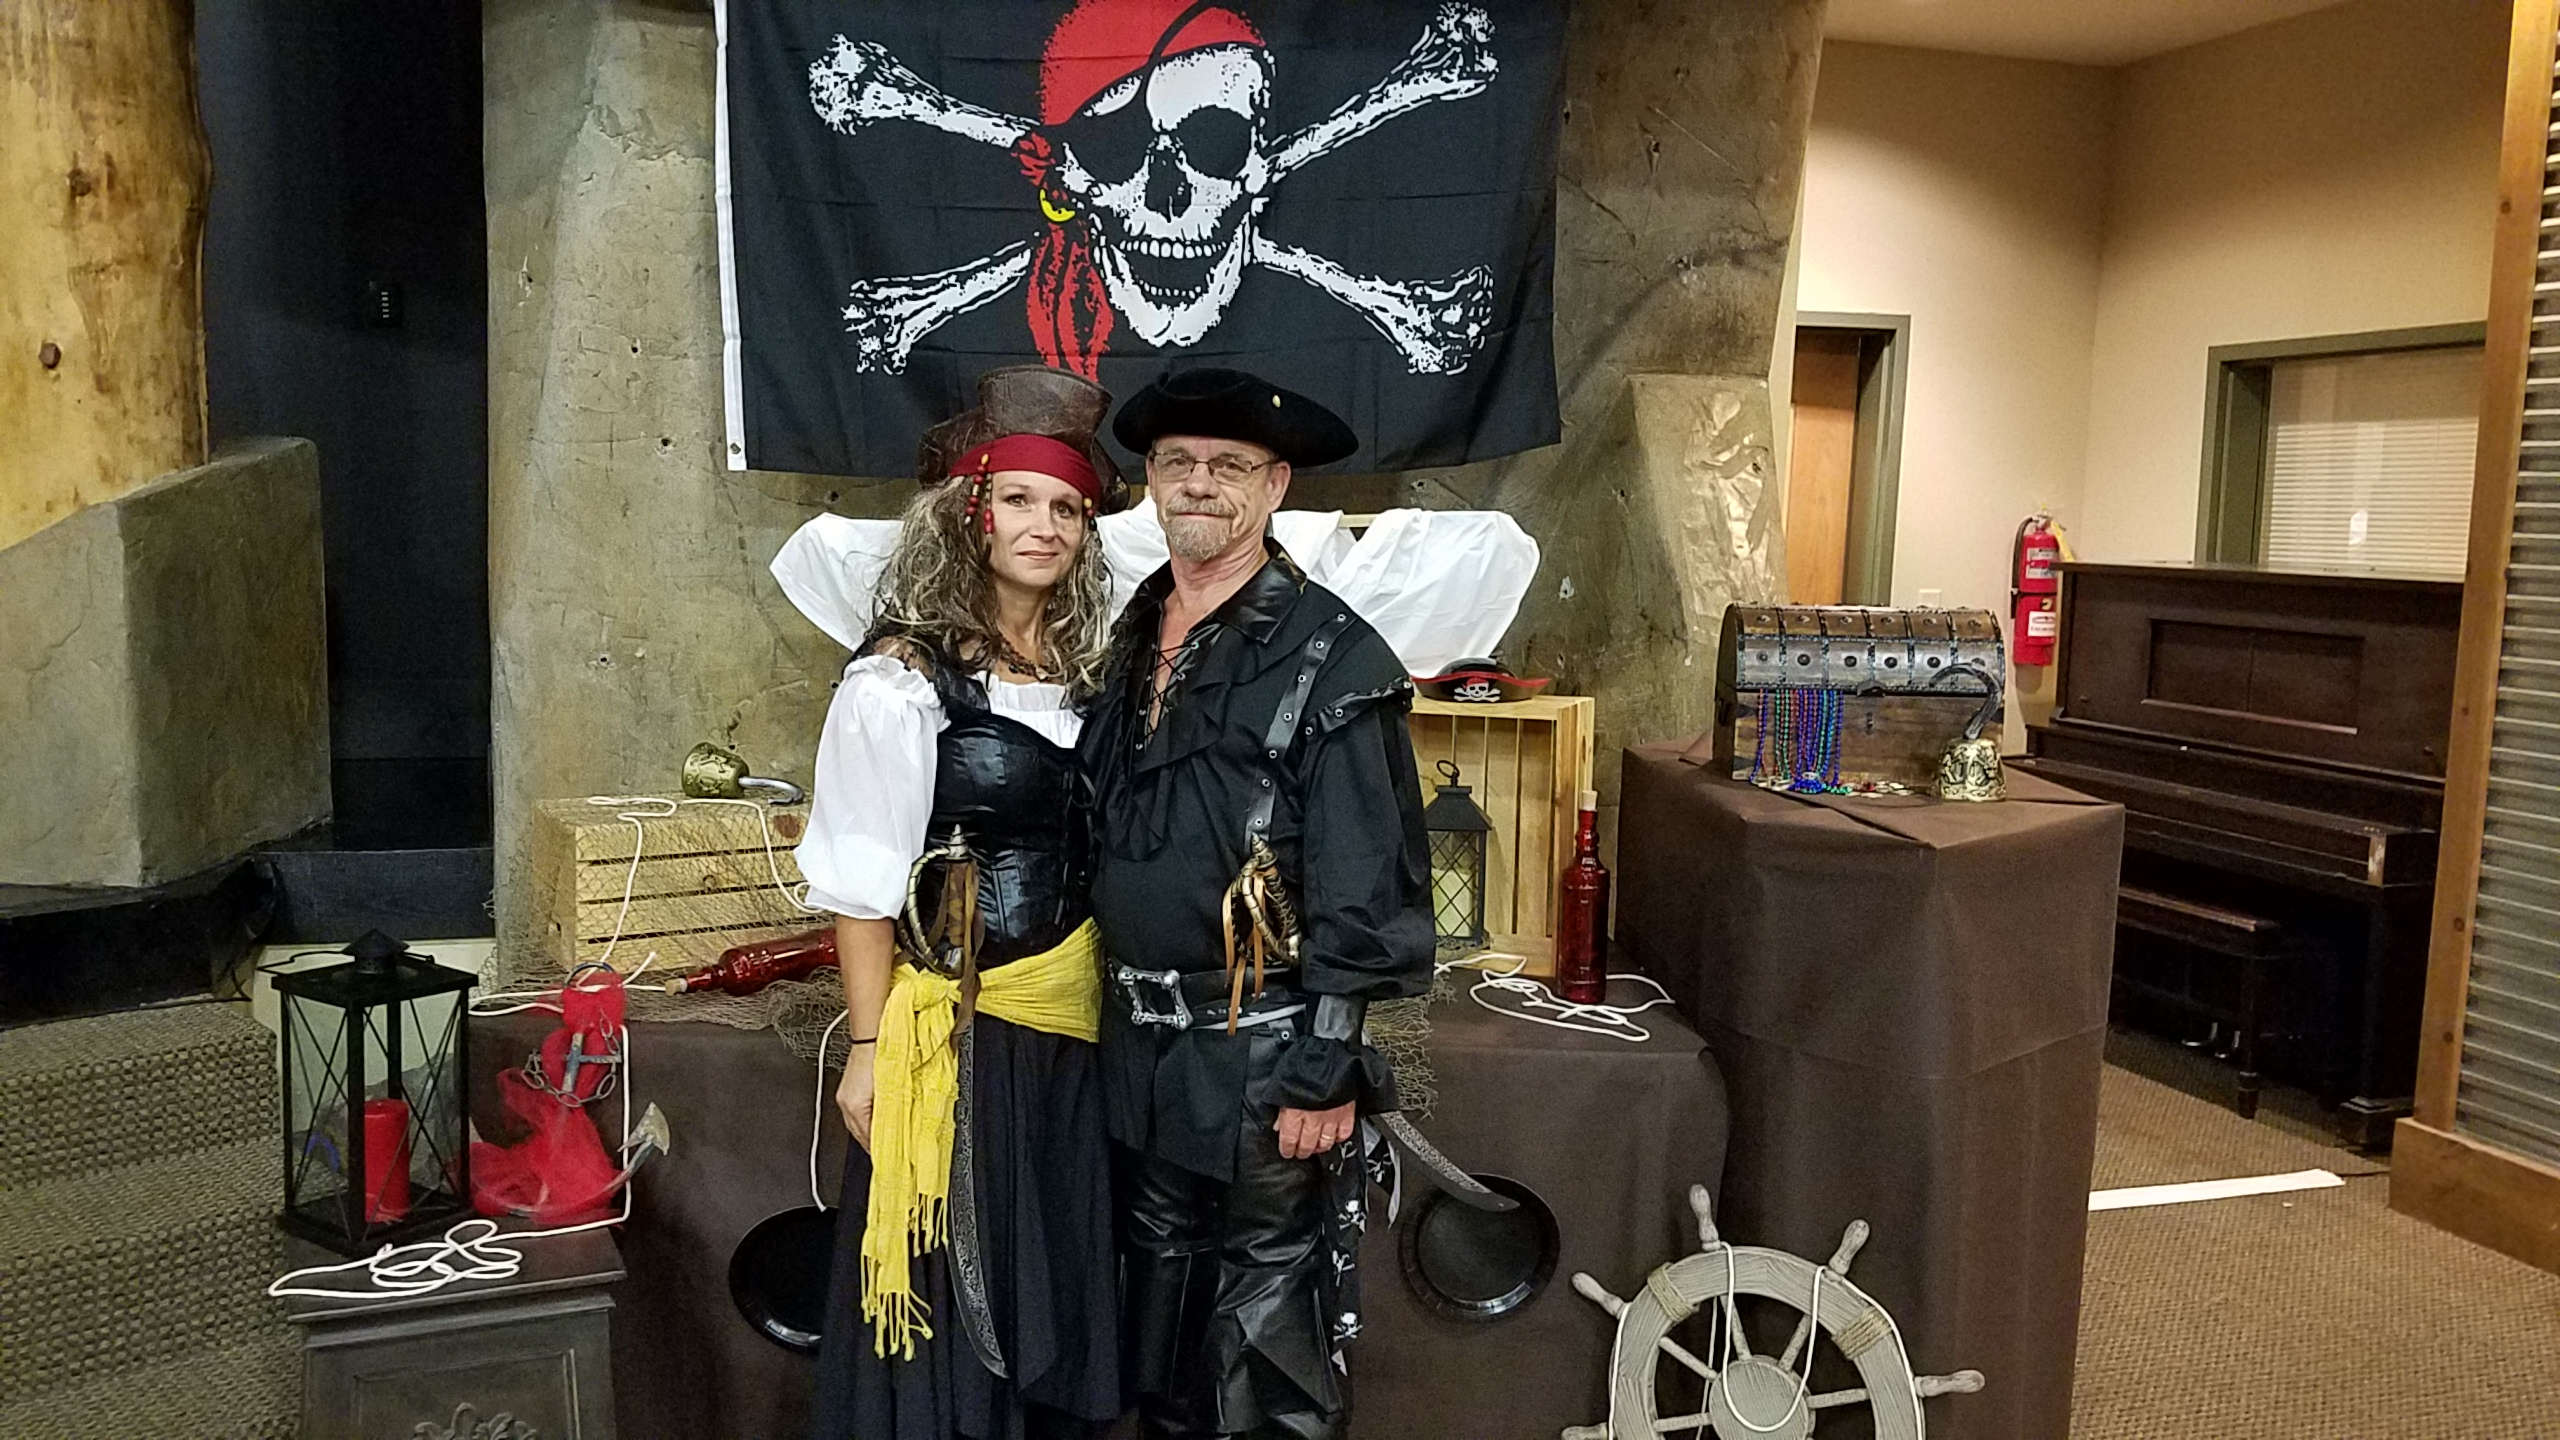 Captain Hook and Mrs. Captain Hook